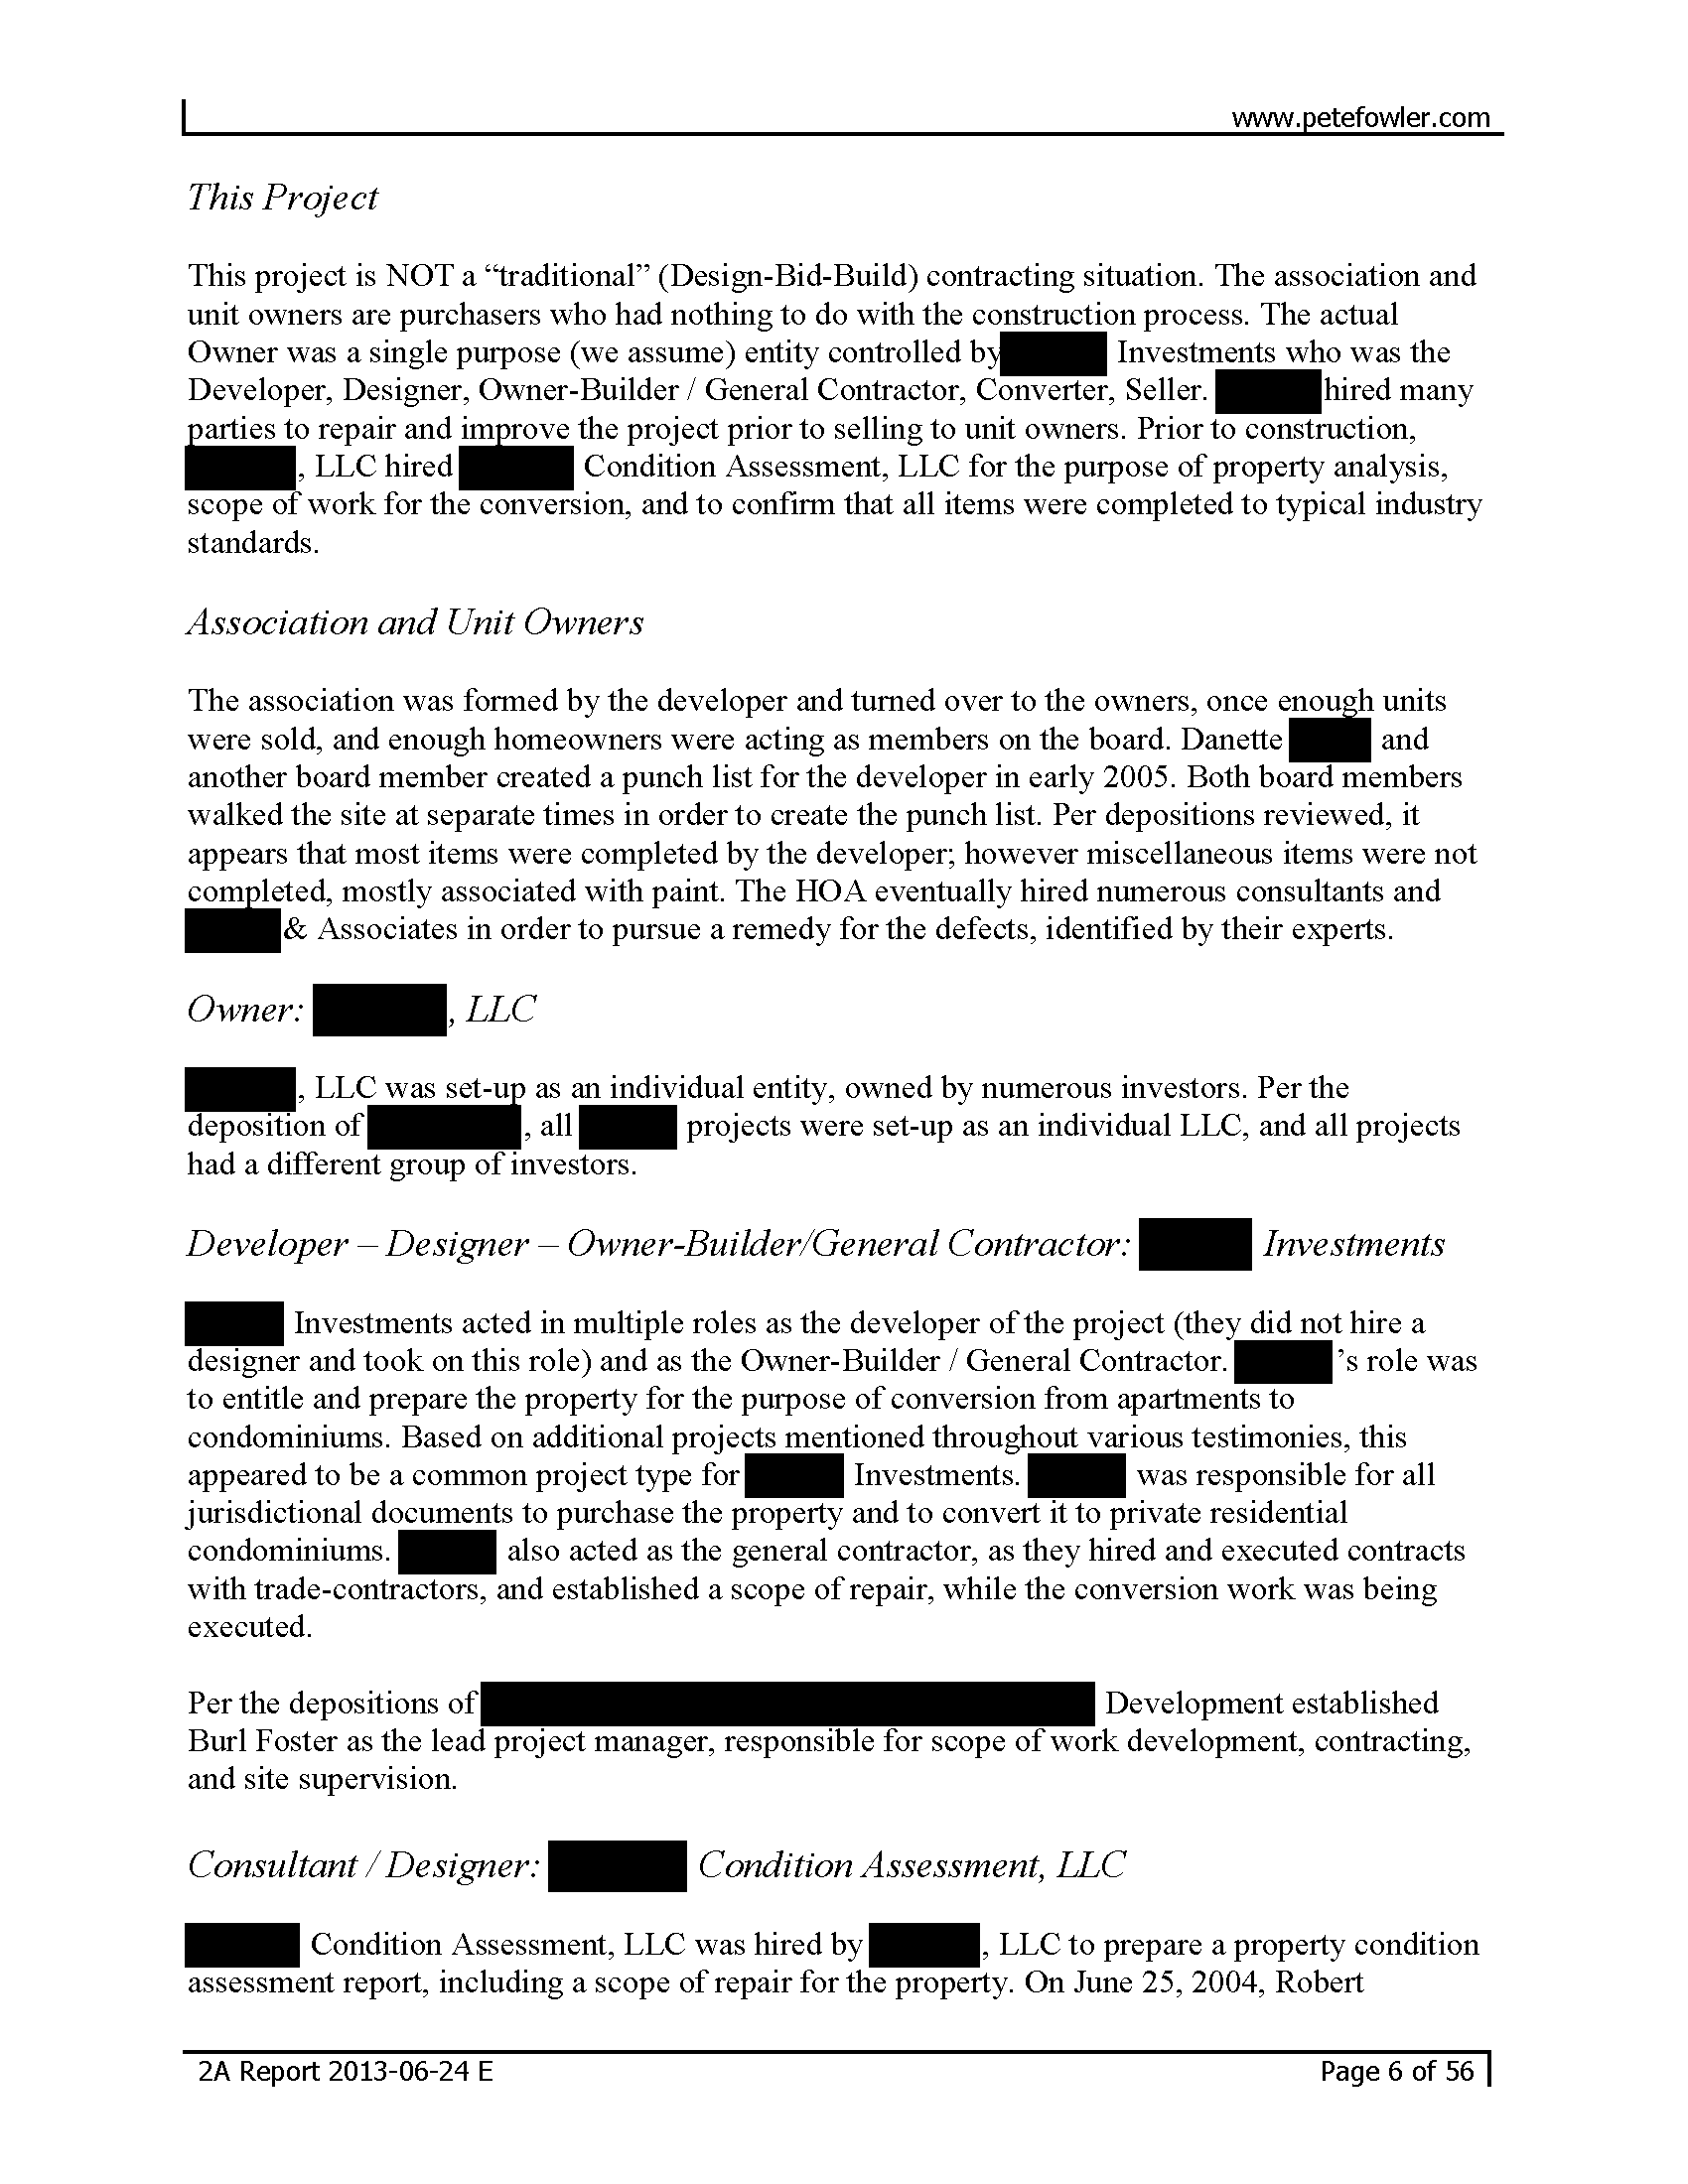 4_Report_2013-06-24_incl_K101_Redacted 3 pages_Page_2.png